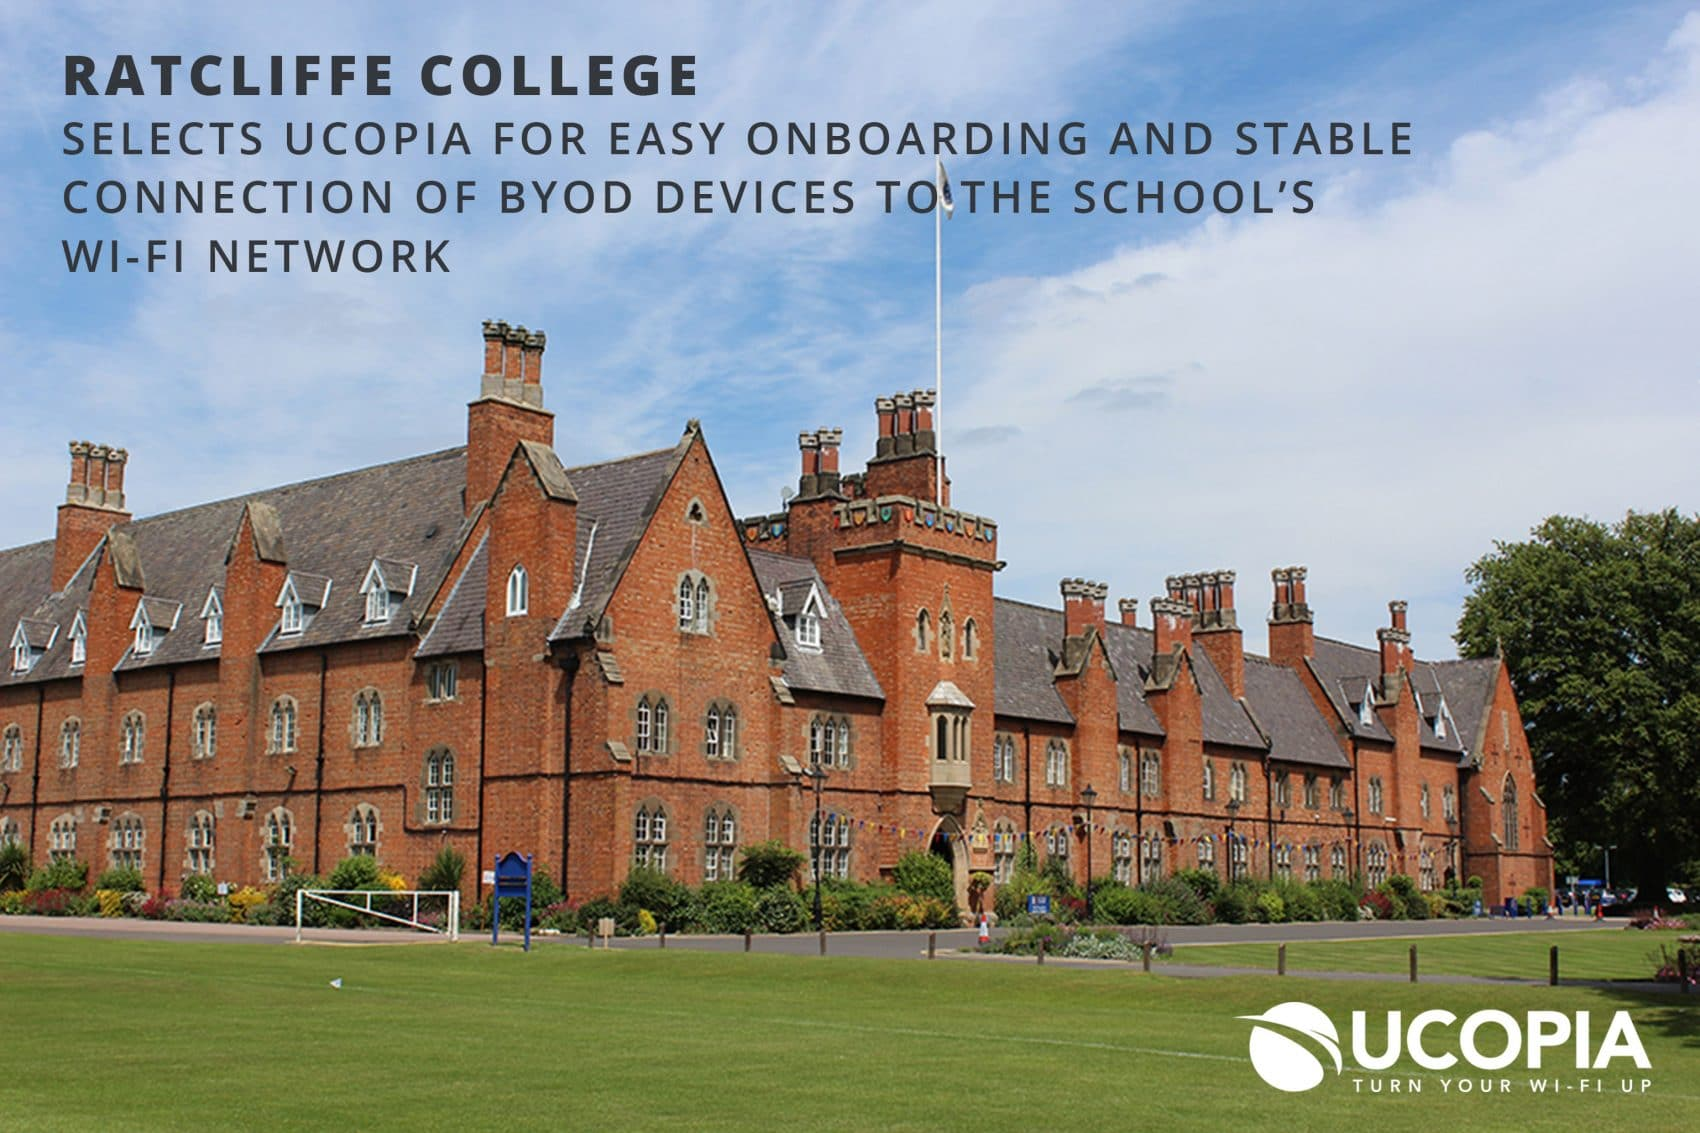 Ratcliffe College selects UCOPIA for easy onboarding and stable connection of BYOD devices to the school's Wi-Fi network